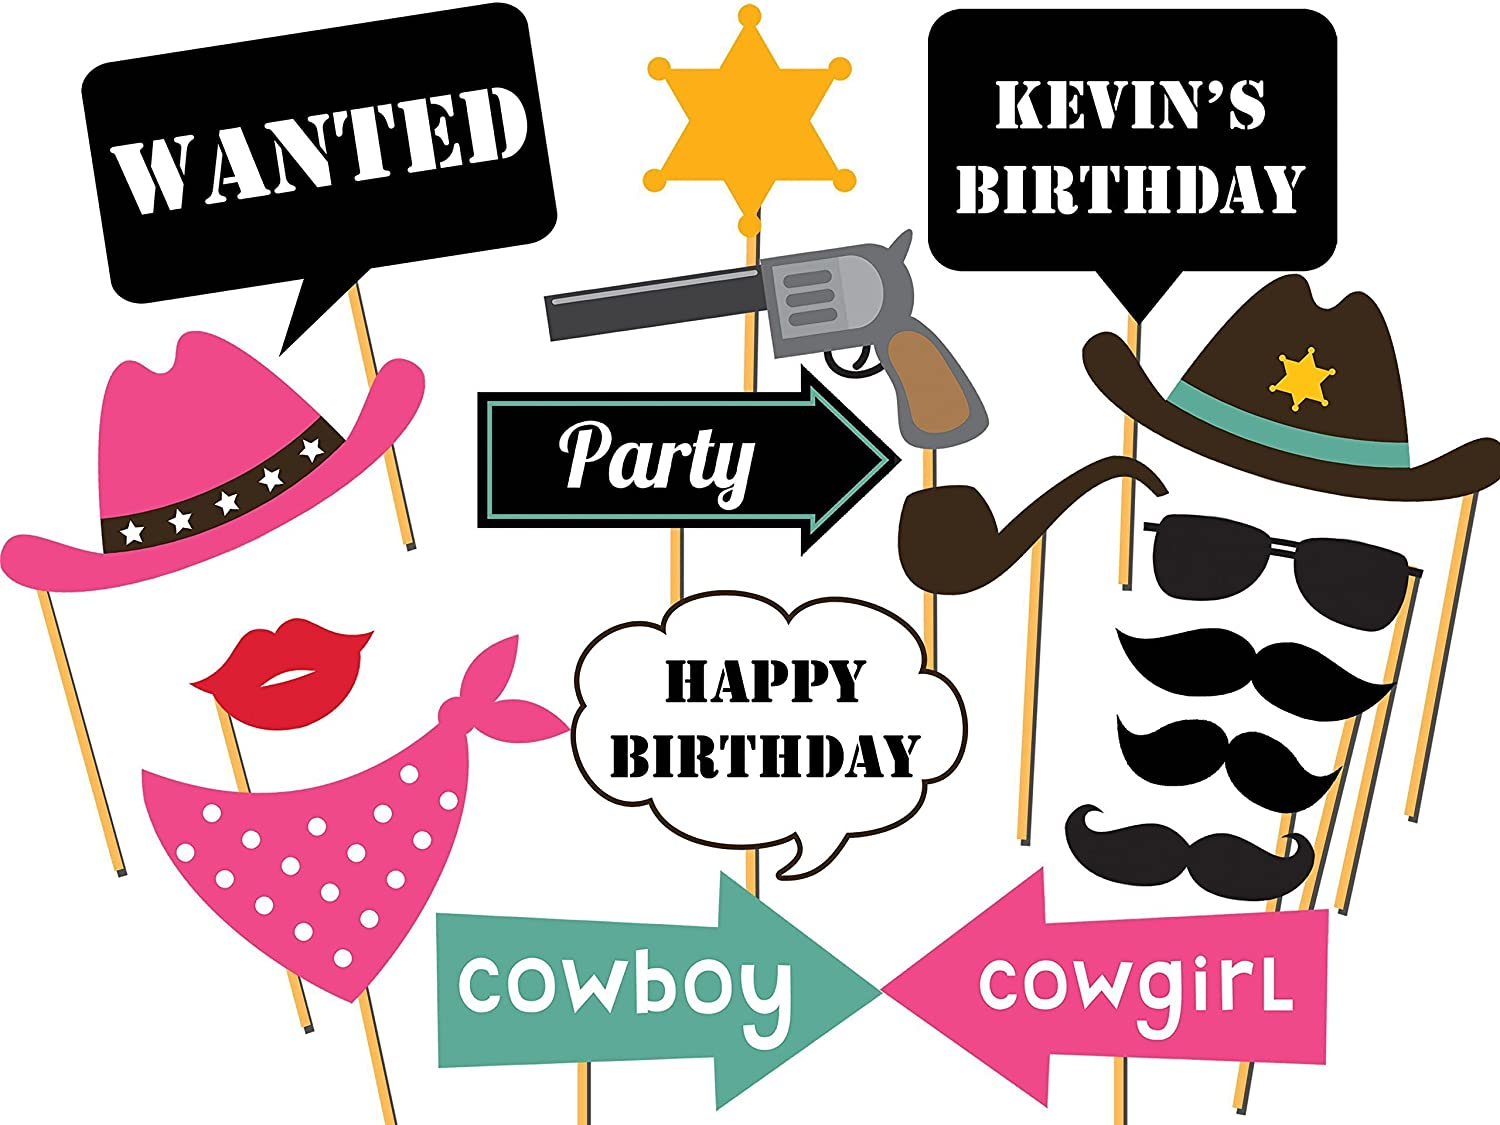 Amazon.com: Custom Cowboy Photo booth props - Size 36x24 ...